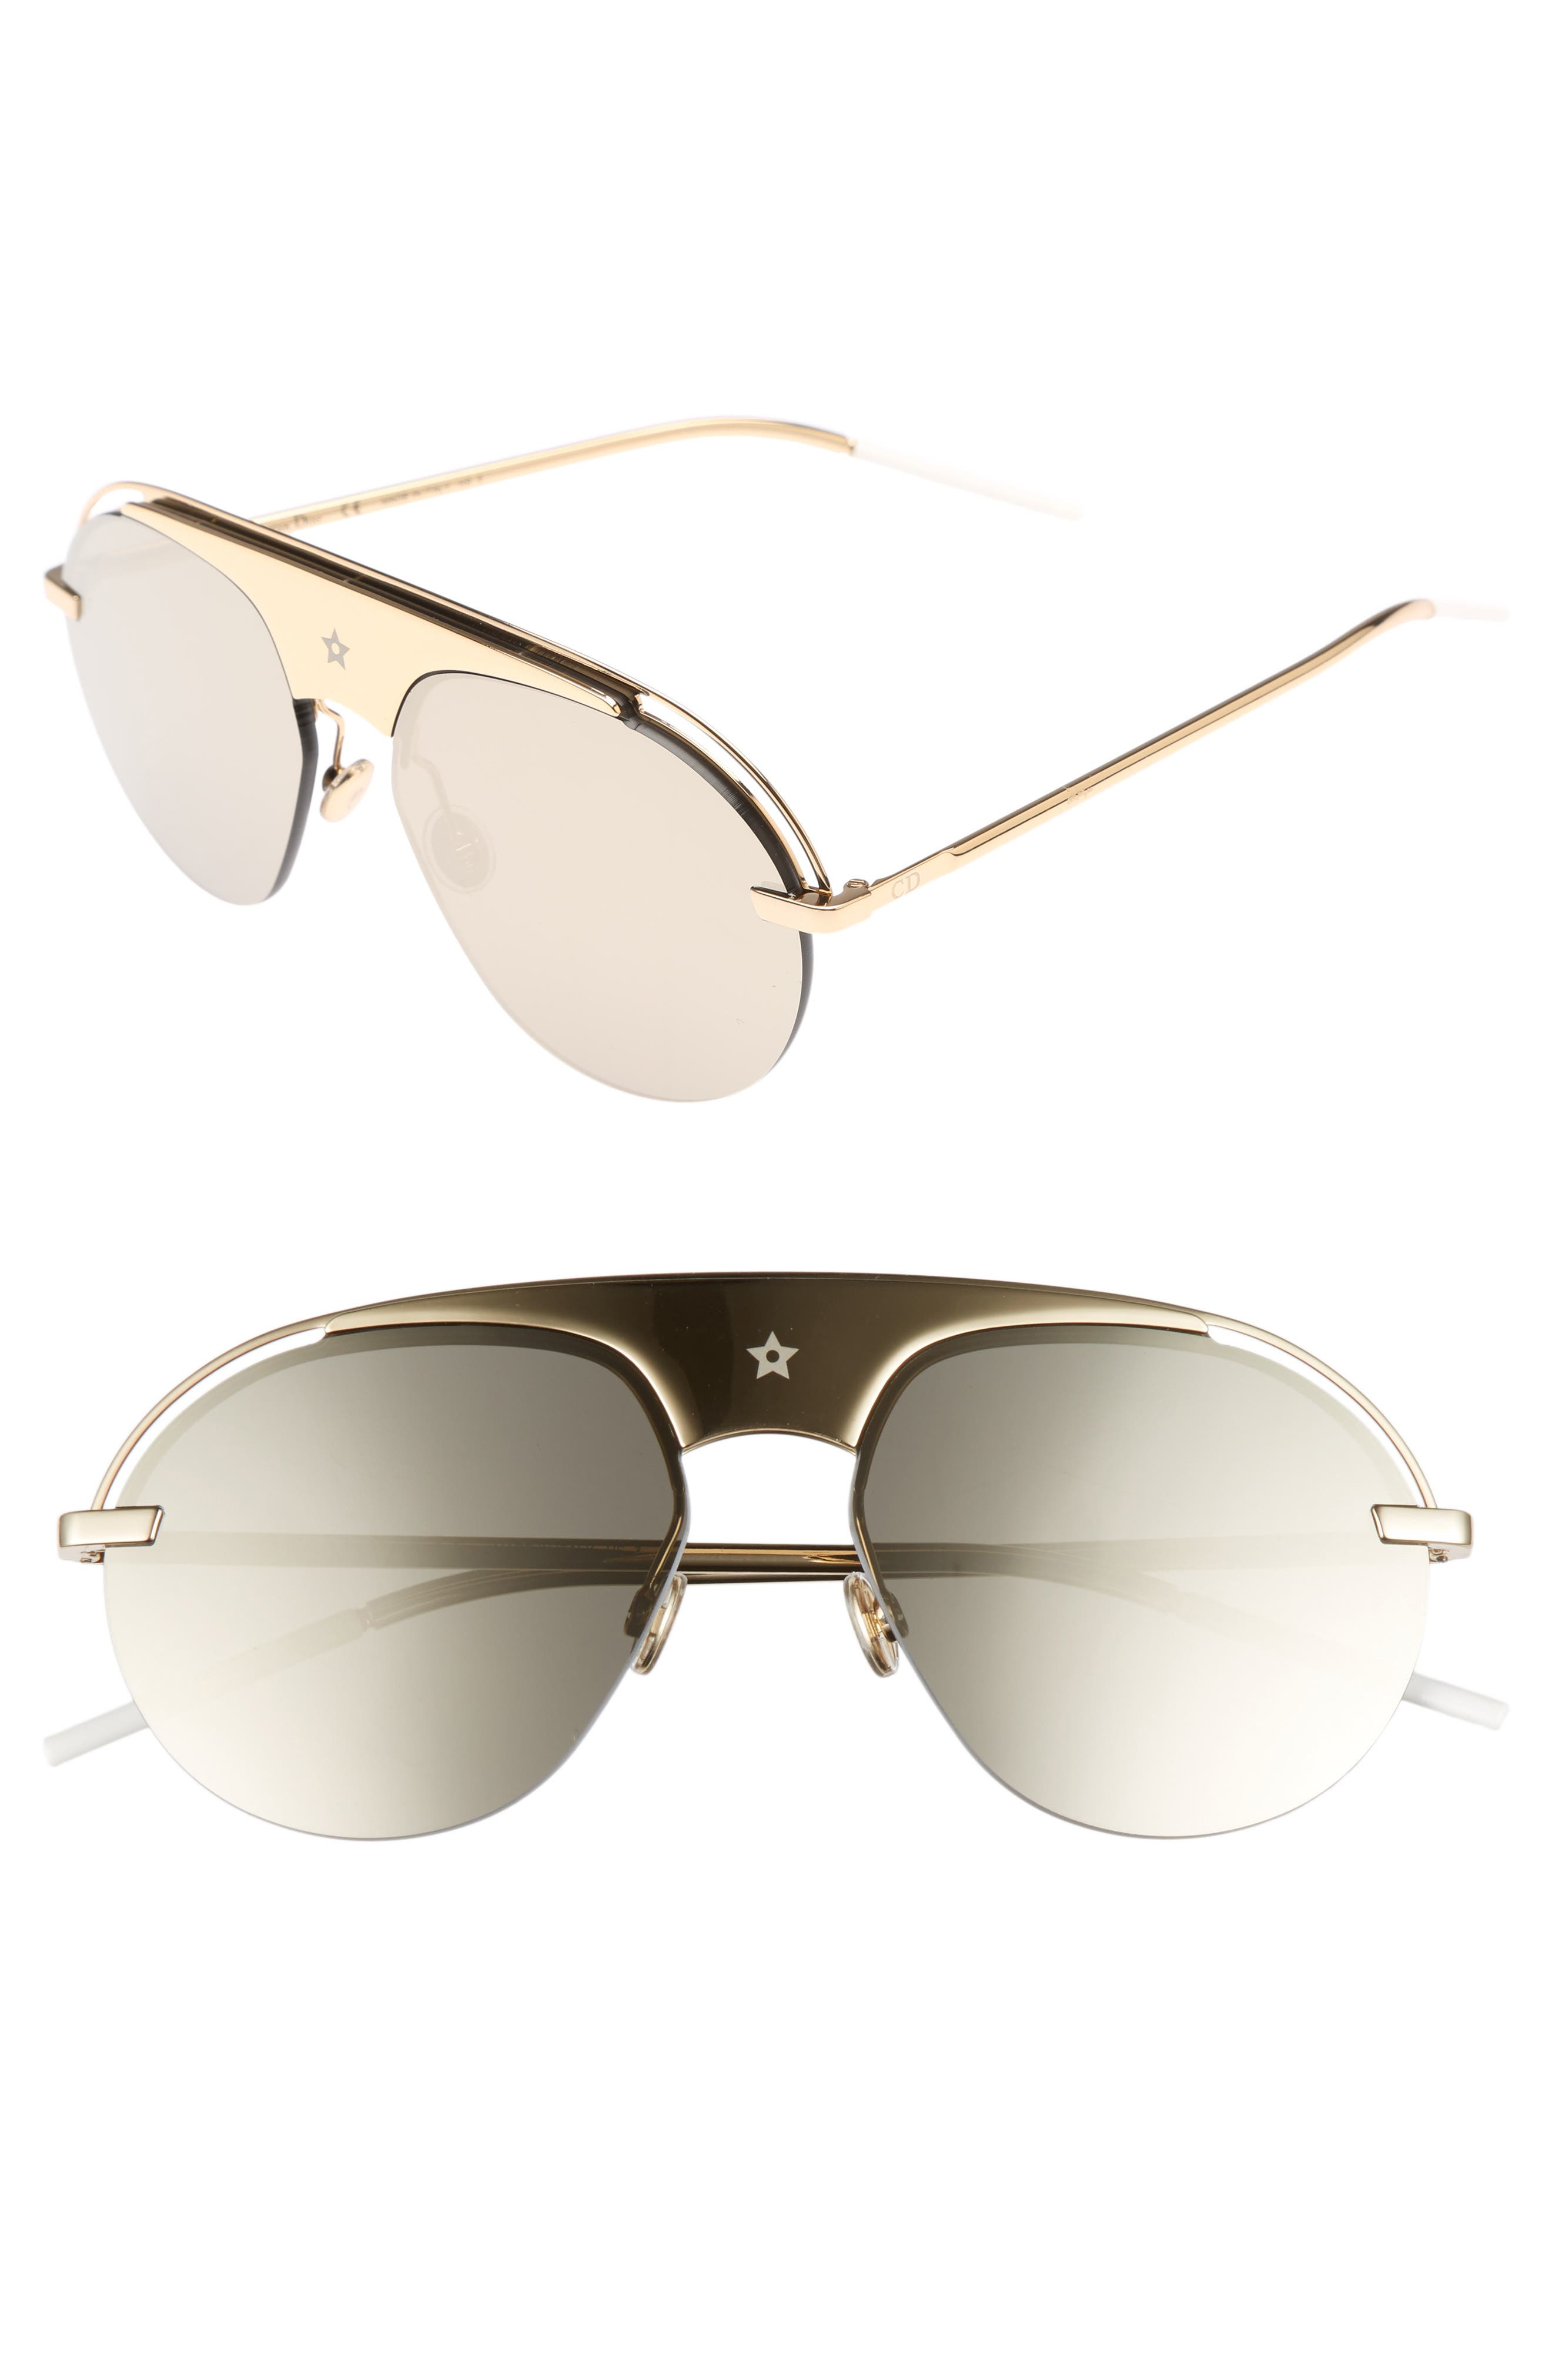 Main Image - Dior Evolution 2 60mm Aviator Sunglasses